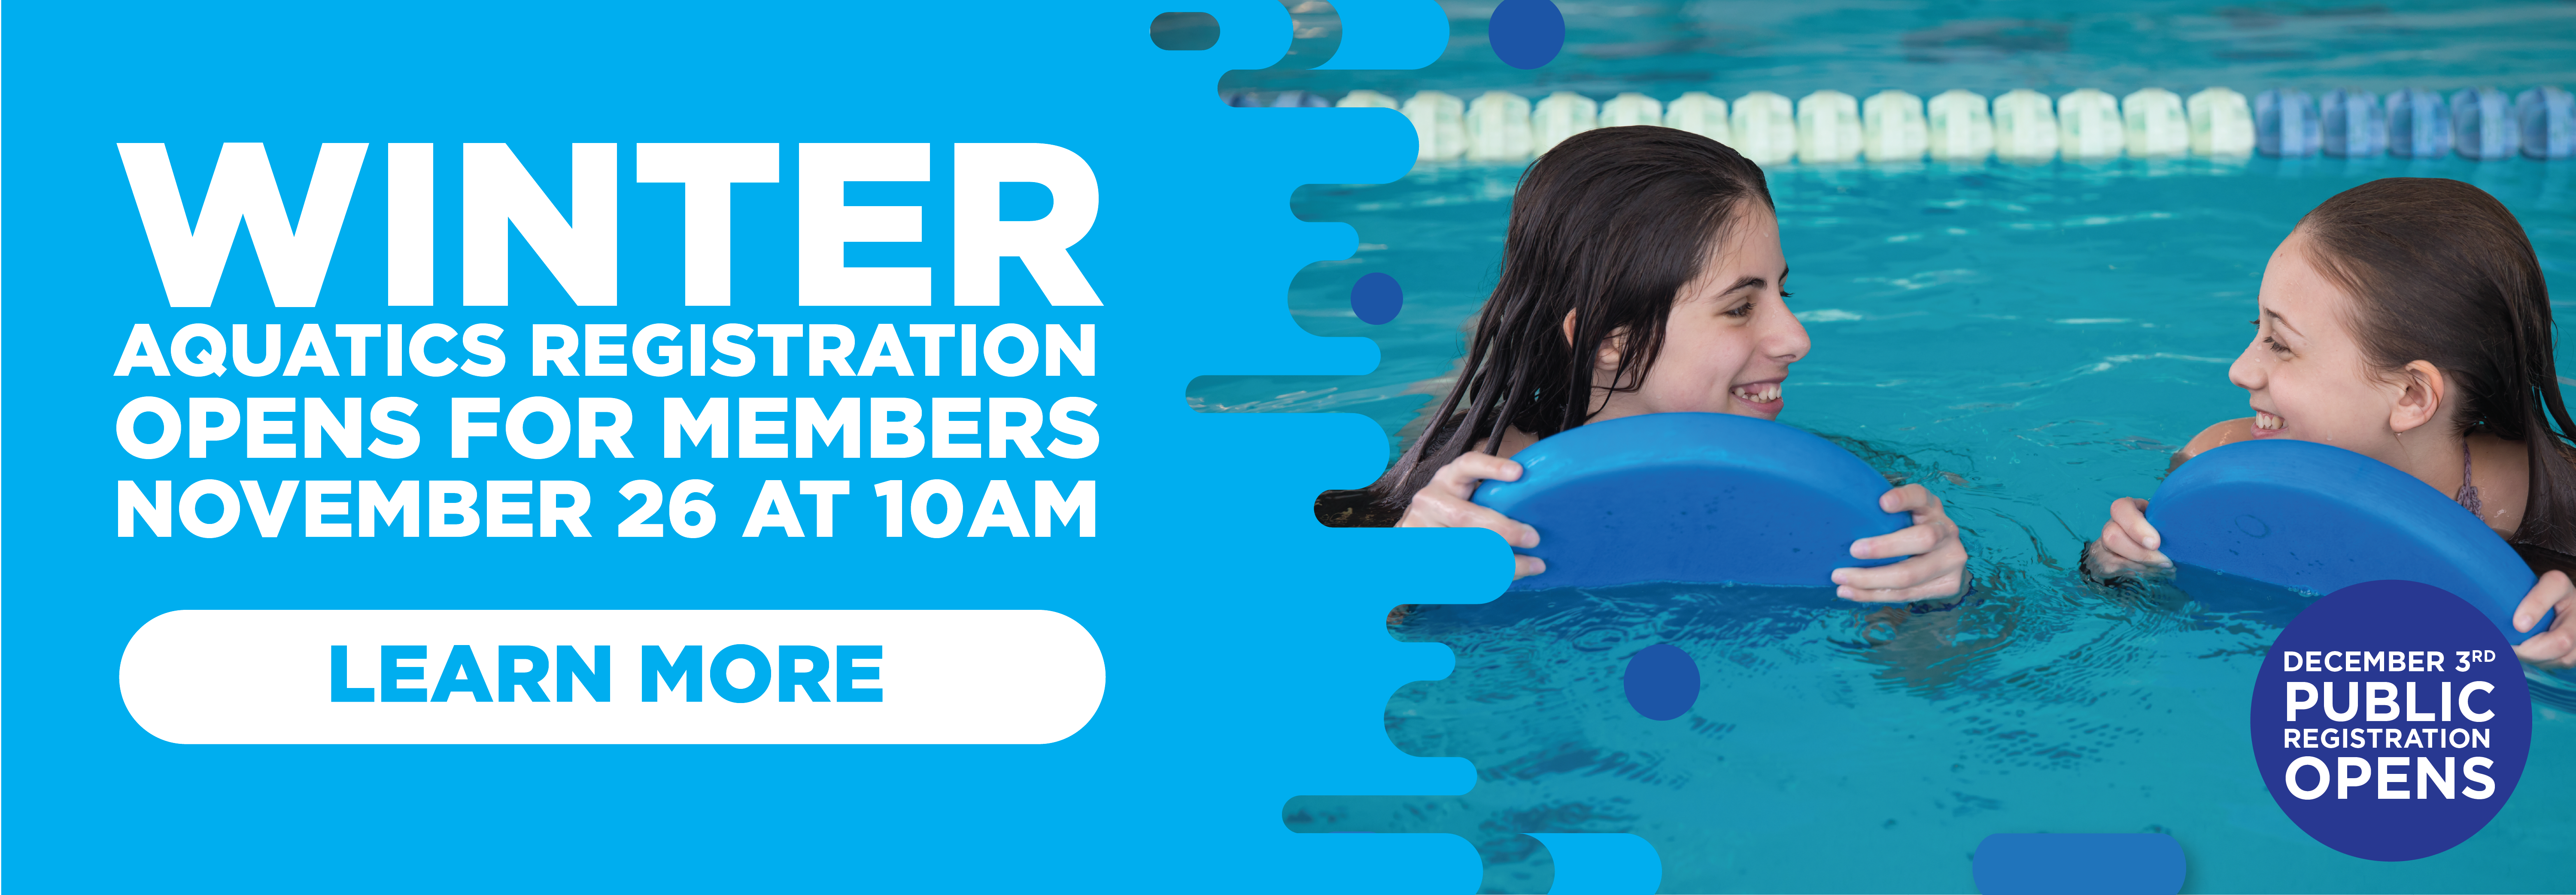 Aquatics Registration Opens for Member Nov. 26